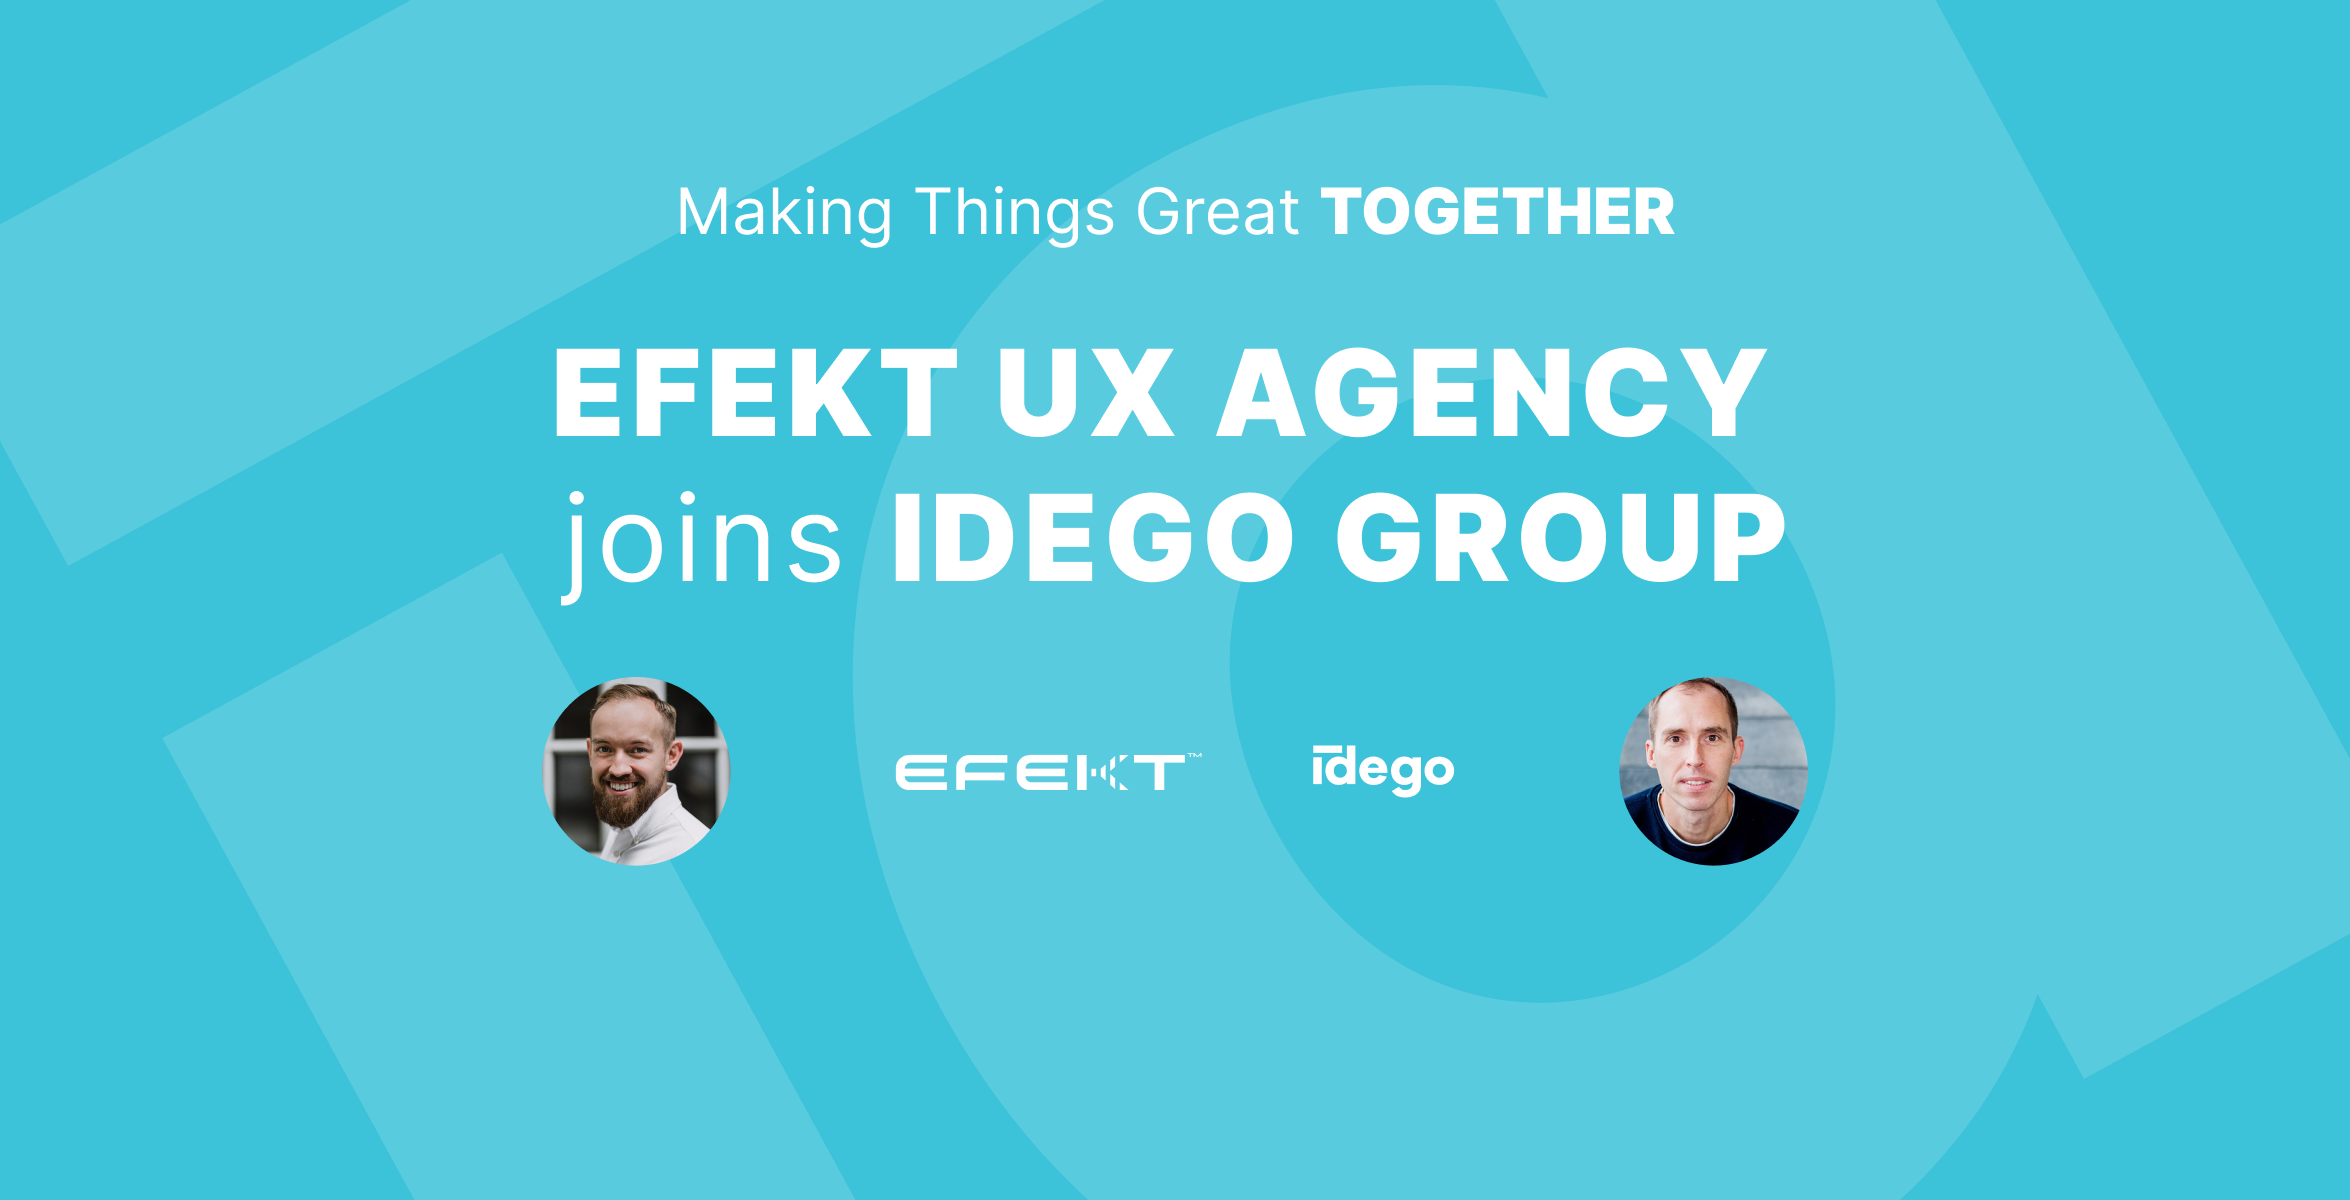 Double the force forwards – the joint of Idego and EFEKT Agency.